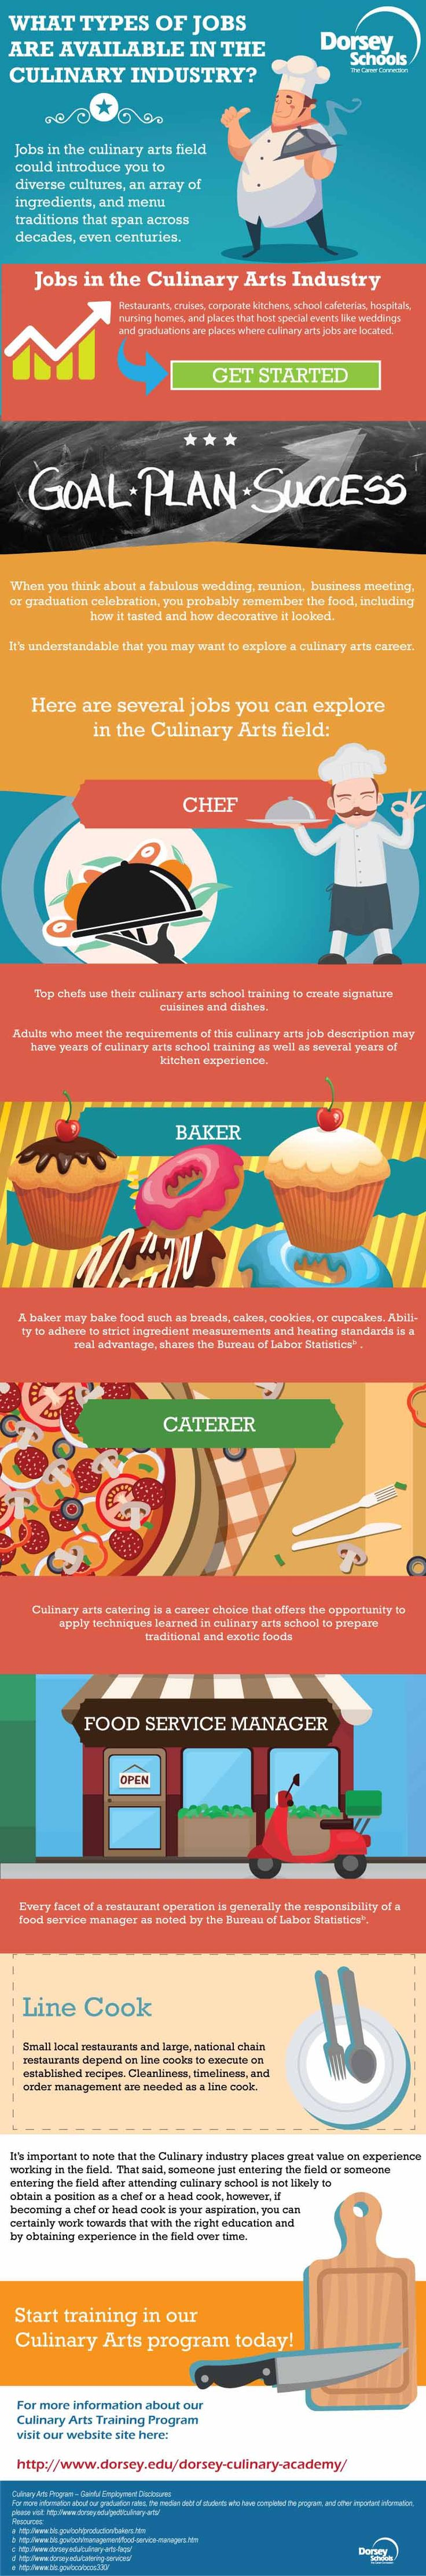 What Types of Jobs Are Available in the Culinary Industry?